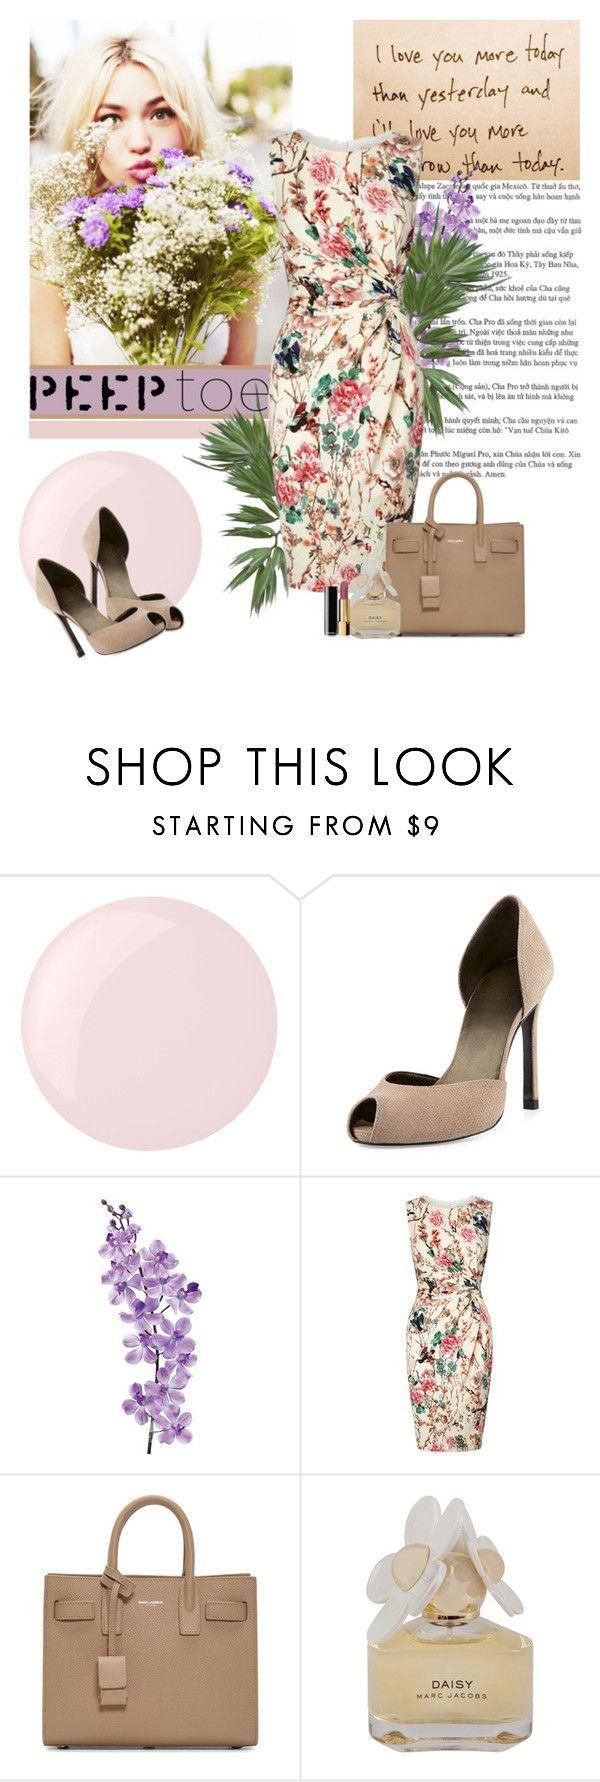 """The Shoes"" by polybaby ❤ liked on Polyvore featuring Essie, Stuart Weitzman, Laura Cole, Lipsy, Yves Saint Laurent, Marc by Marc Jacobs, Chanel, peeptoe and polyvoreeditorial"